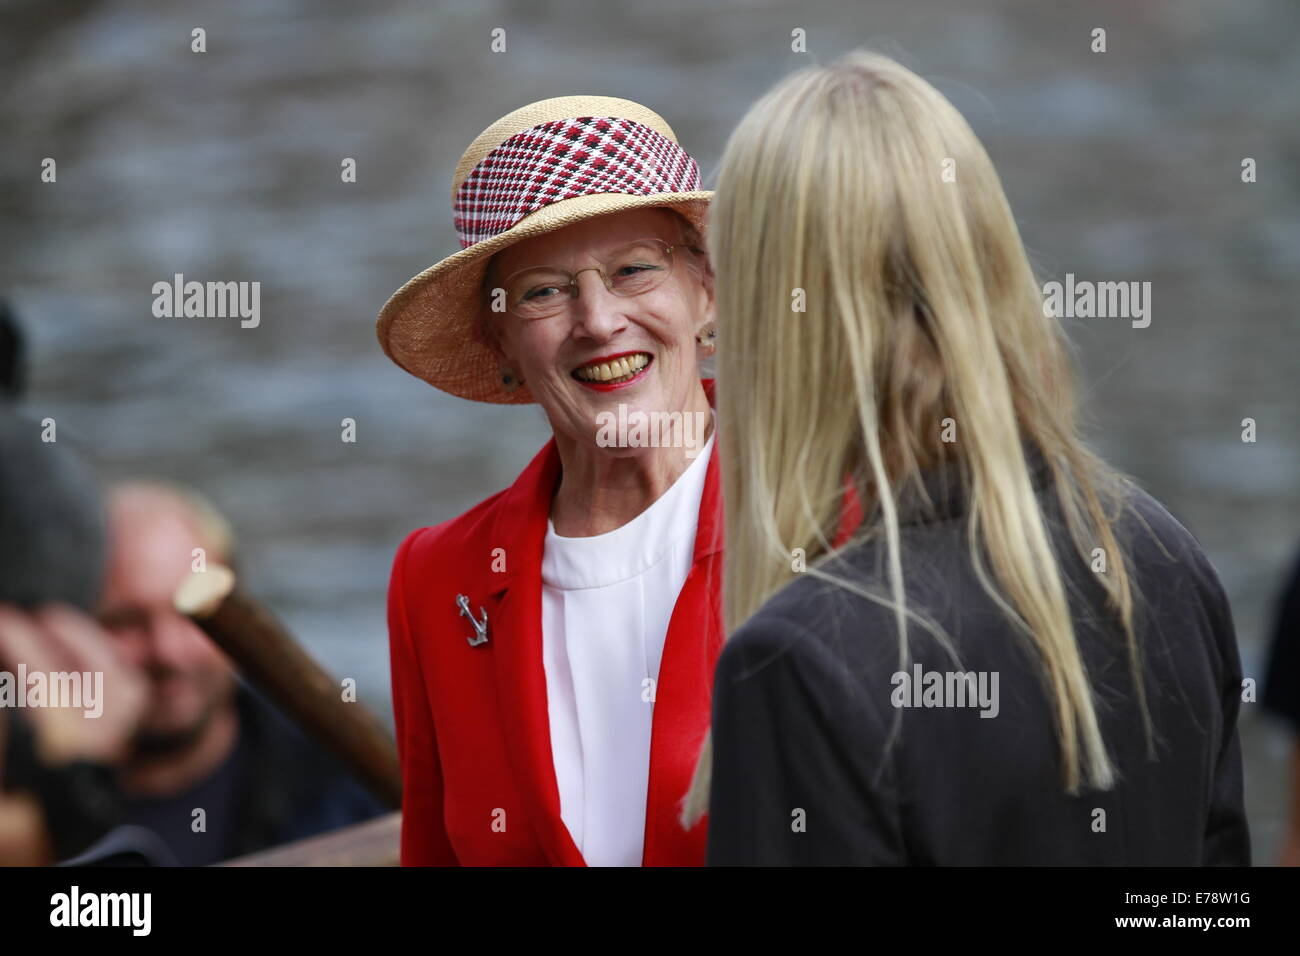 Her Majesty, Queen Margrethe II of Denmark during her visit to the Danish ship Havhingsten fra Glendalough ('Sea - Stock Image